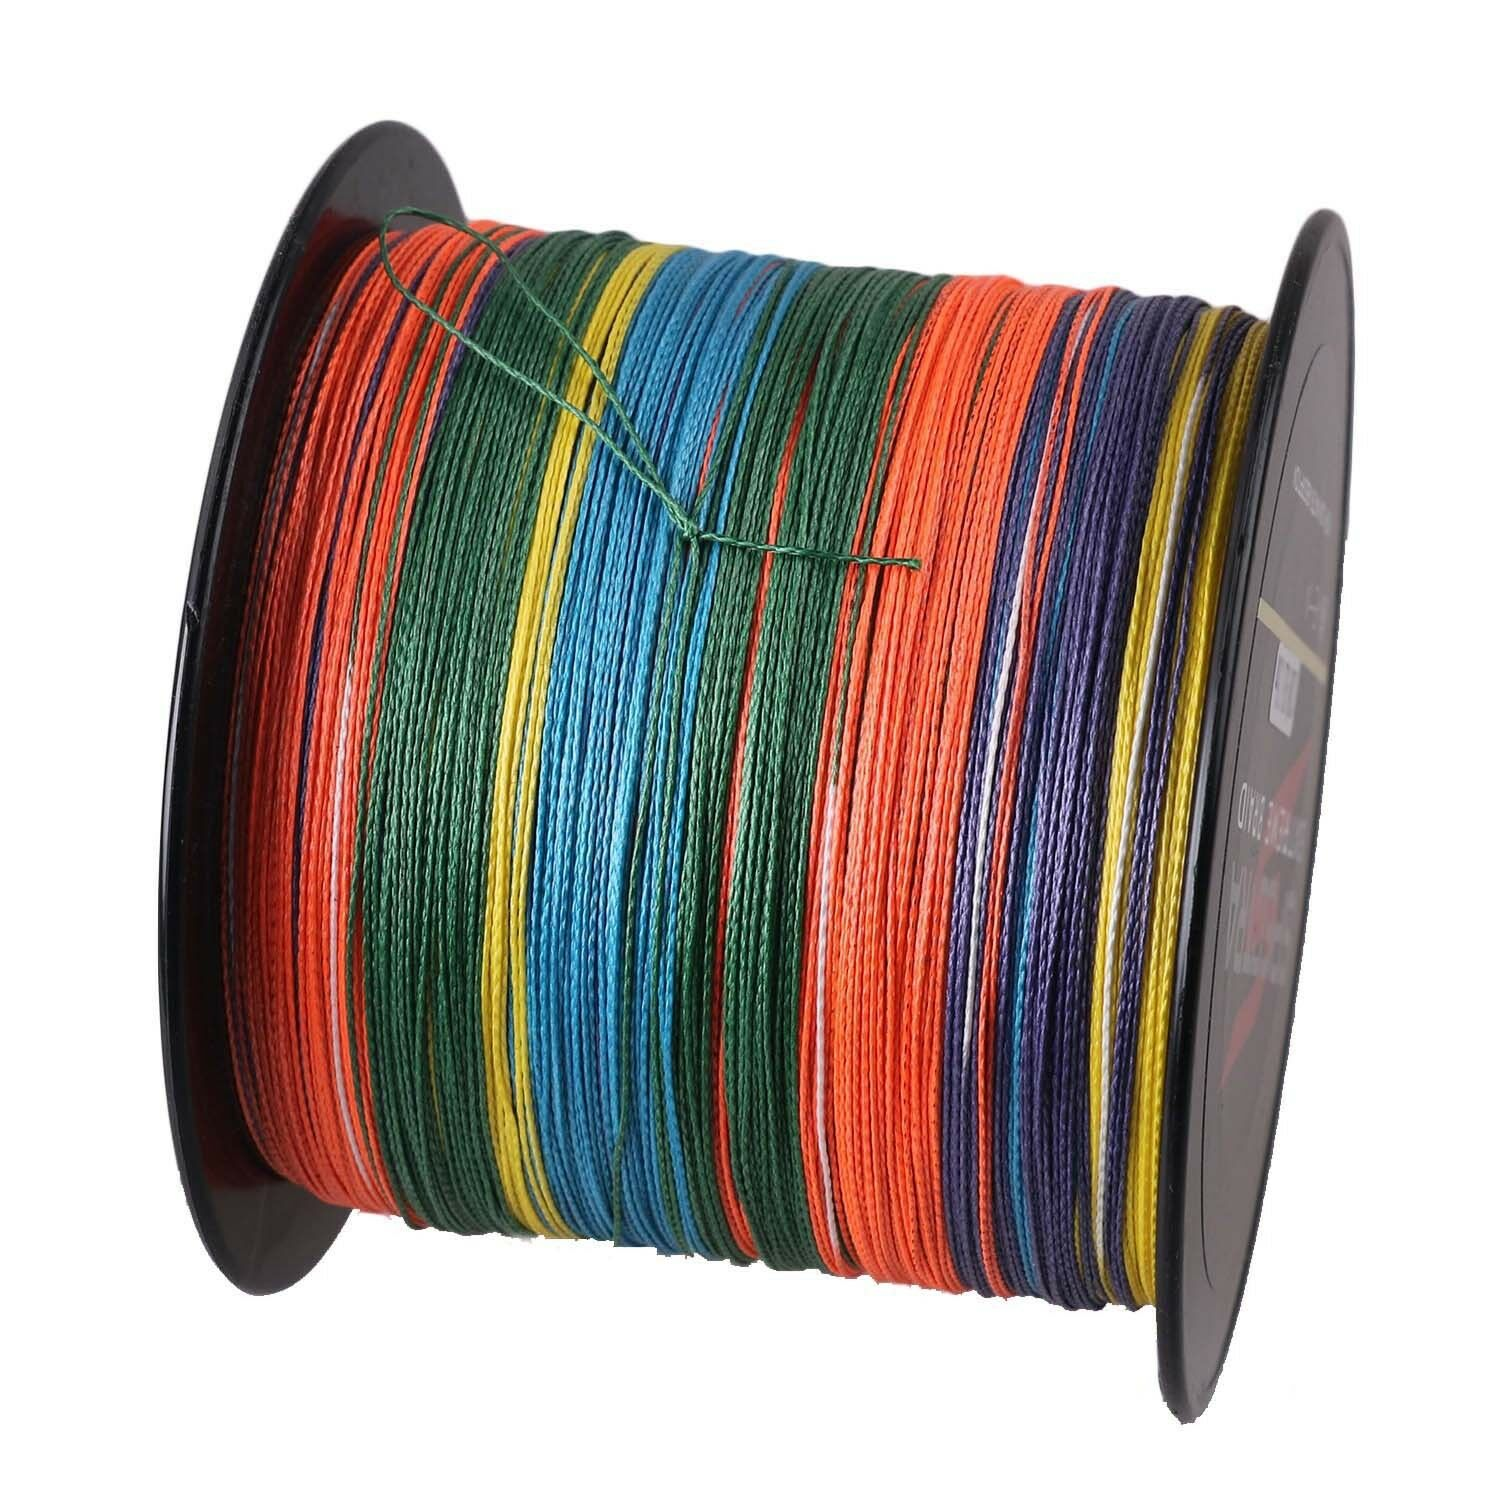 100m-1000m 6LB300LB Multi-color PE Dyneema Línea Pesca trenzados Strong Braid